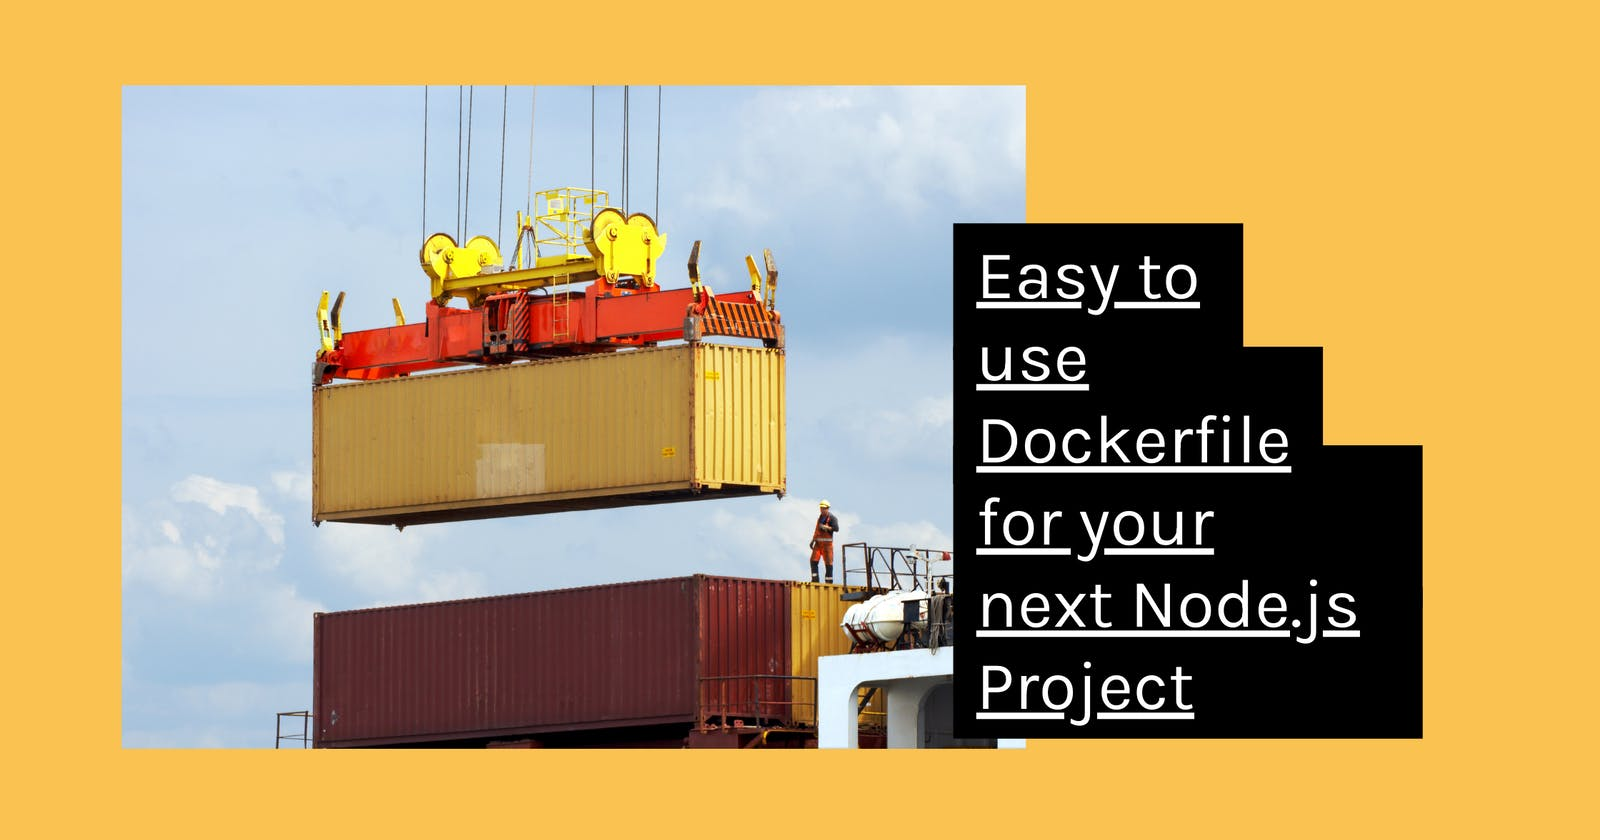 Easy to use Dockerfile for your next Node.js Project